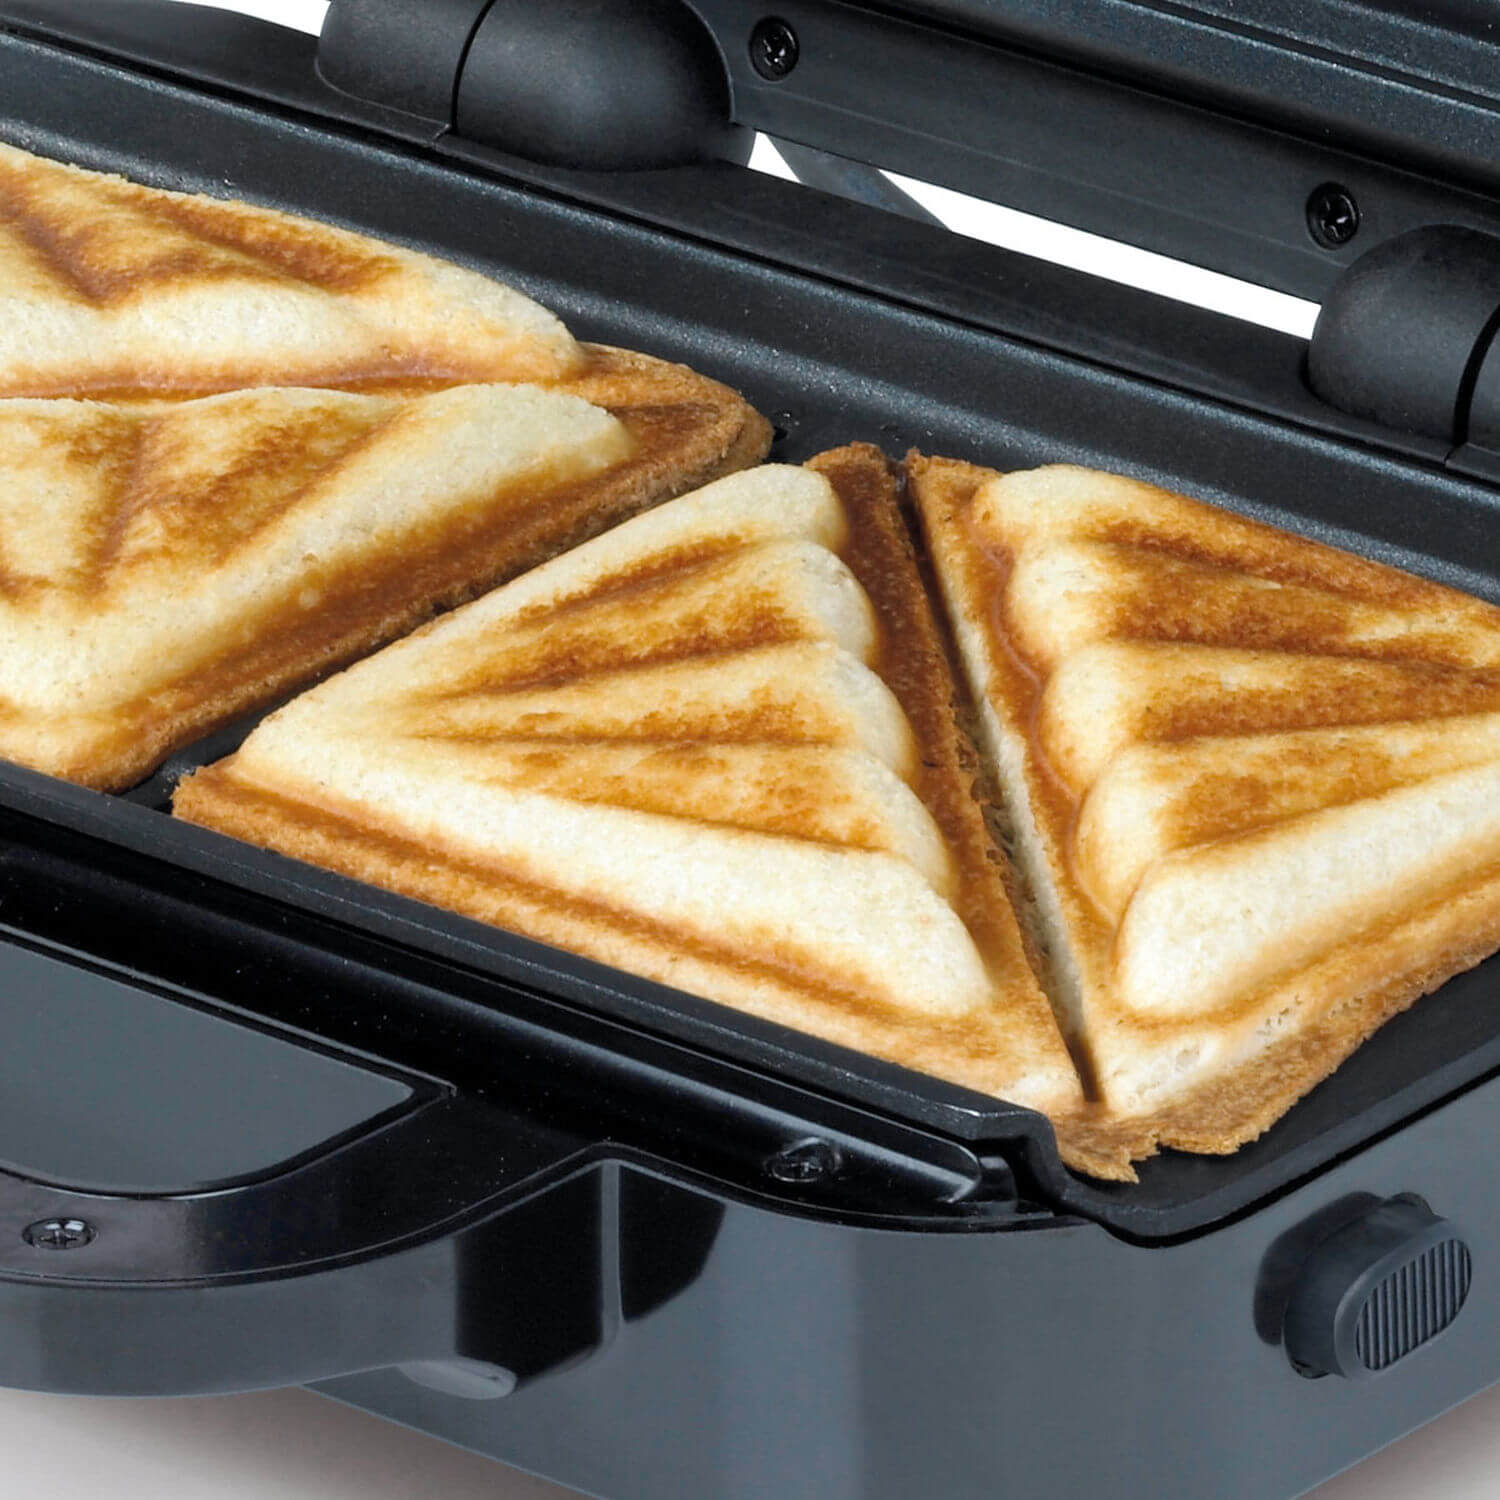 slice store breville maker small kettles and toasters appliances toaster westmoreland stuart sandwich